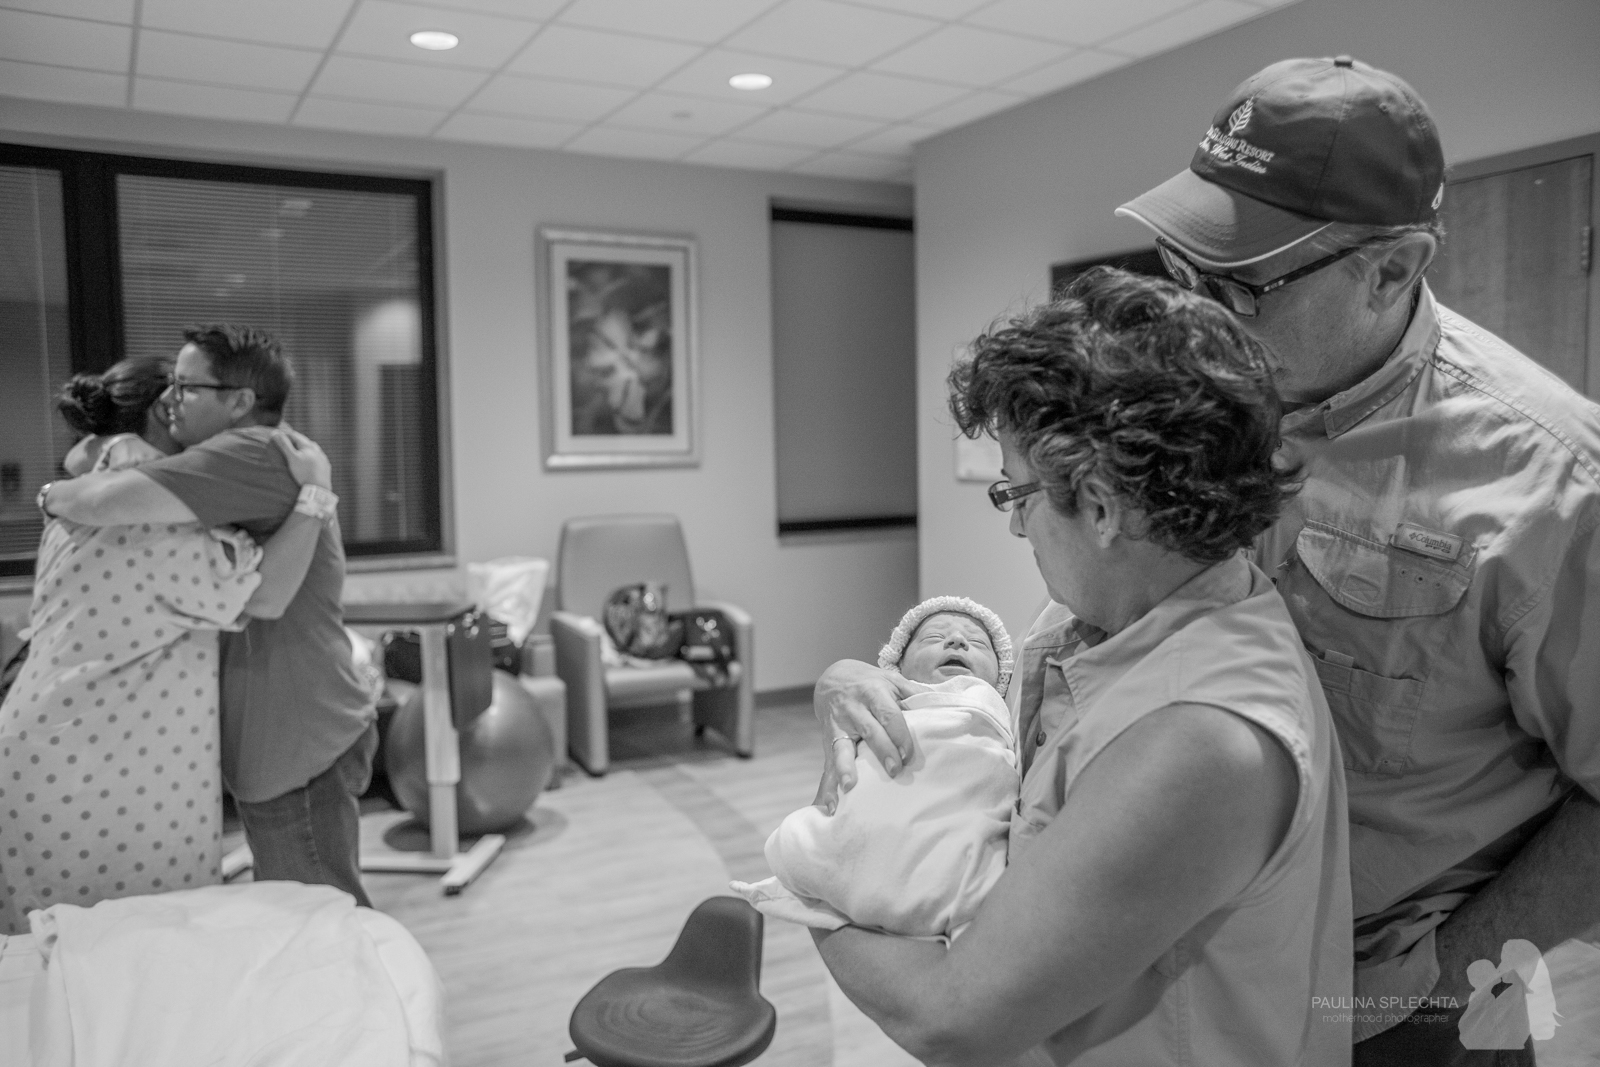 bocabirthphotographer-boca-birth-photographer-birth-center-hospital-hypnobirthing-midwife-doula-trimester-breastfeeding-florida-hollywood-delray-stop-nausea-morning-sickness-37.jpg